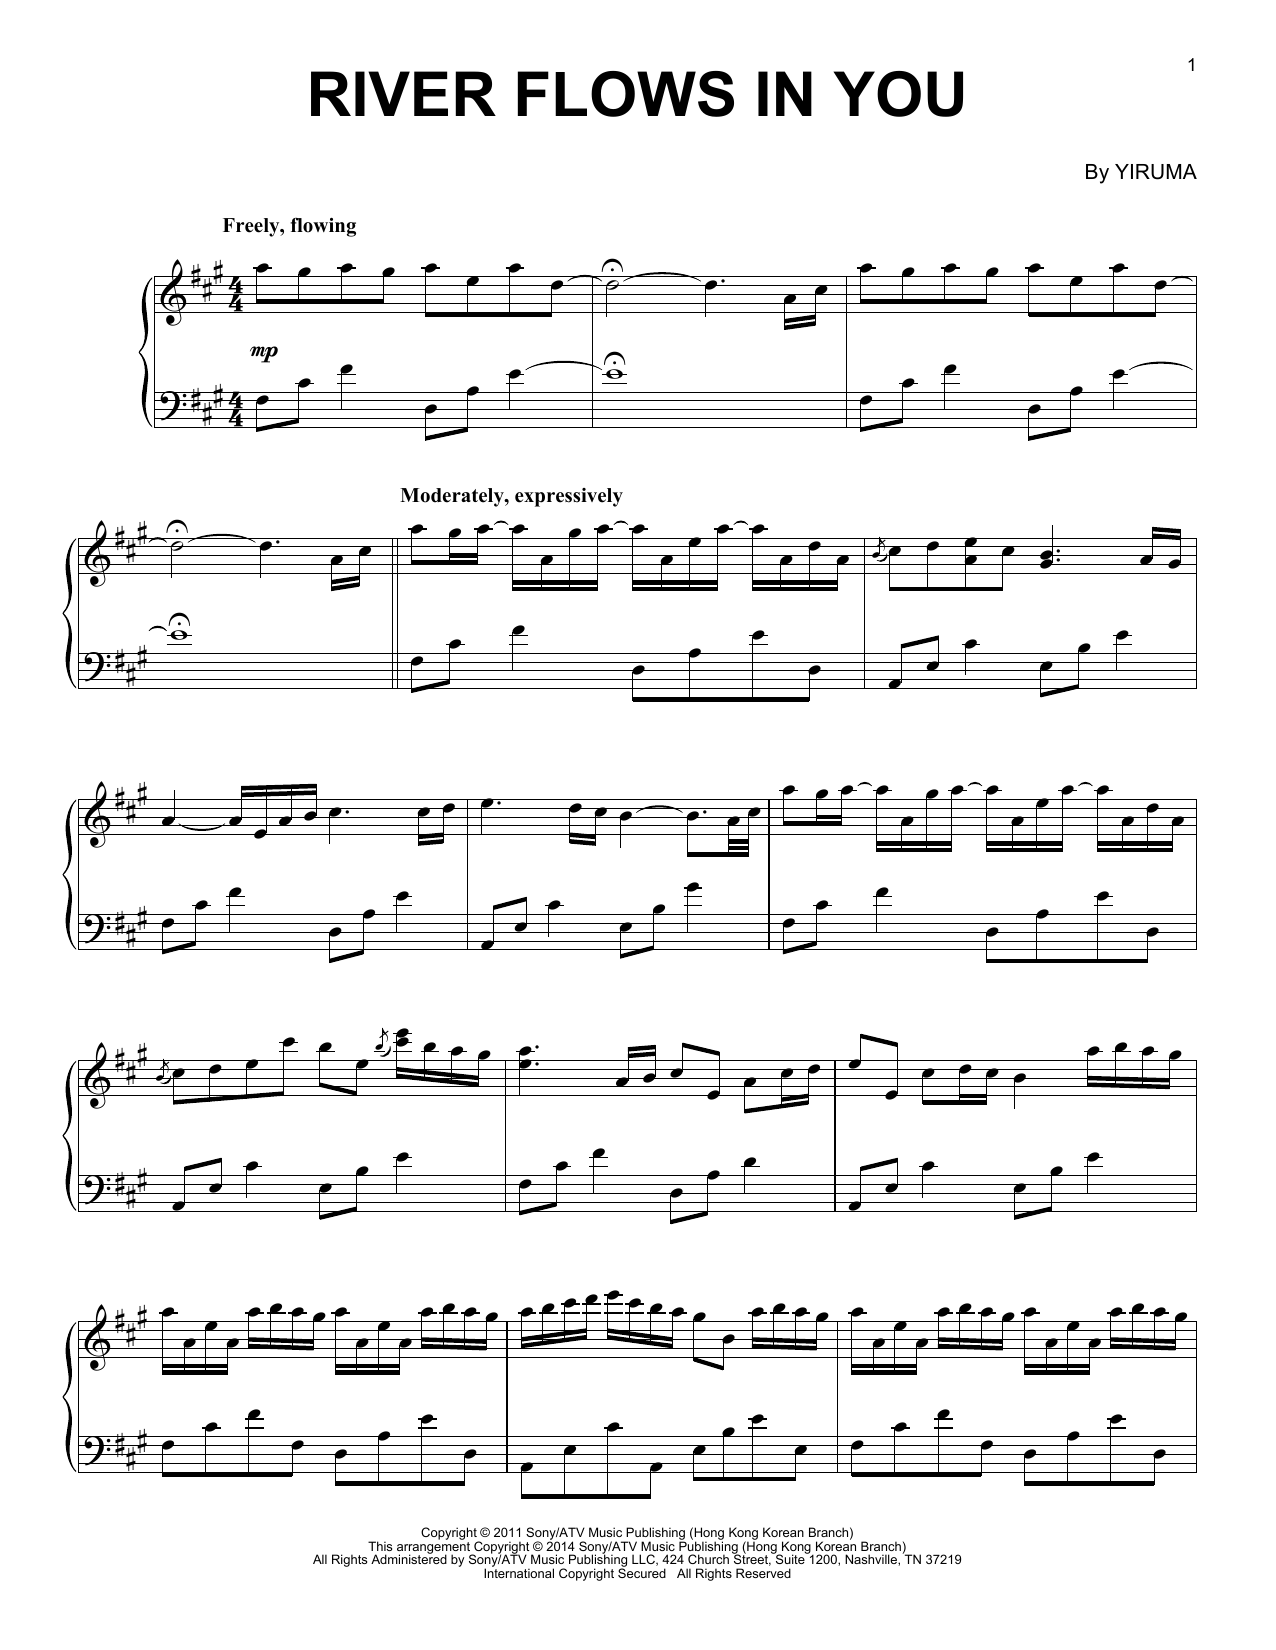 Download Yiruma 'River Flows In You' Digital Sheet Music Notes & Chords and start playing in minutes